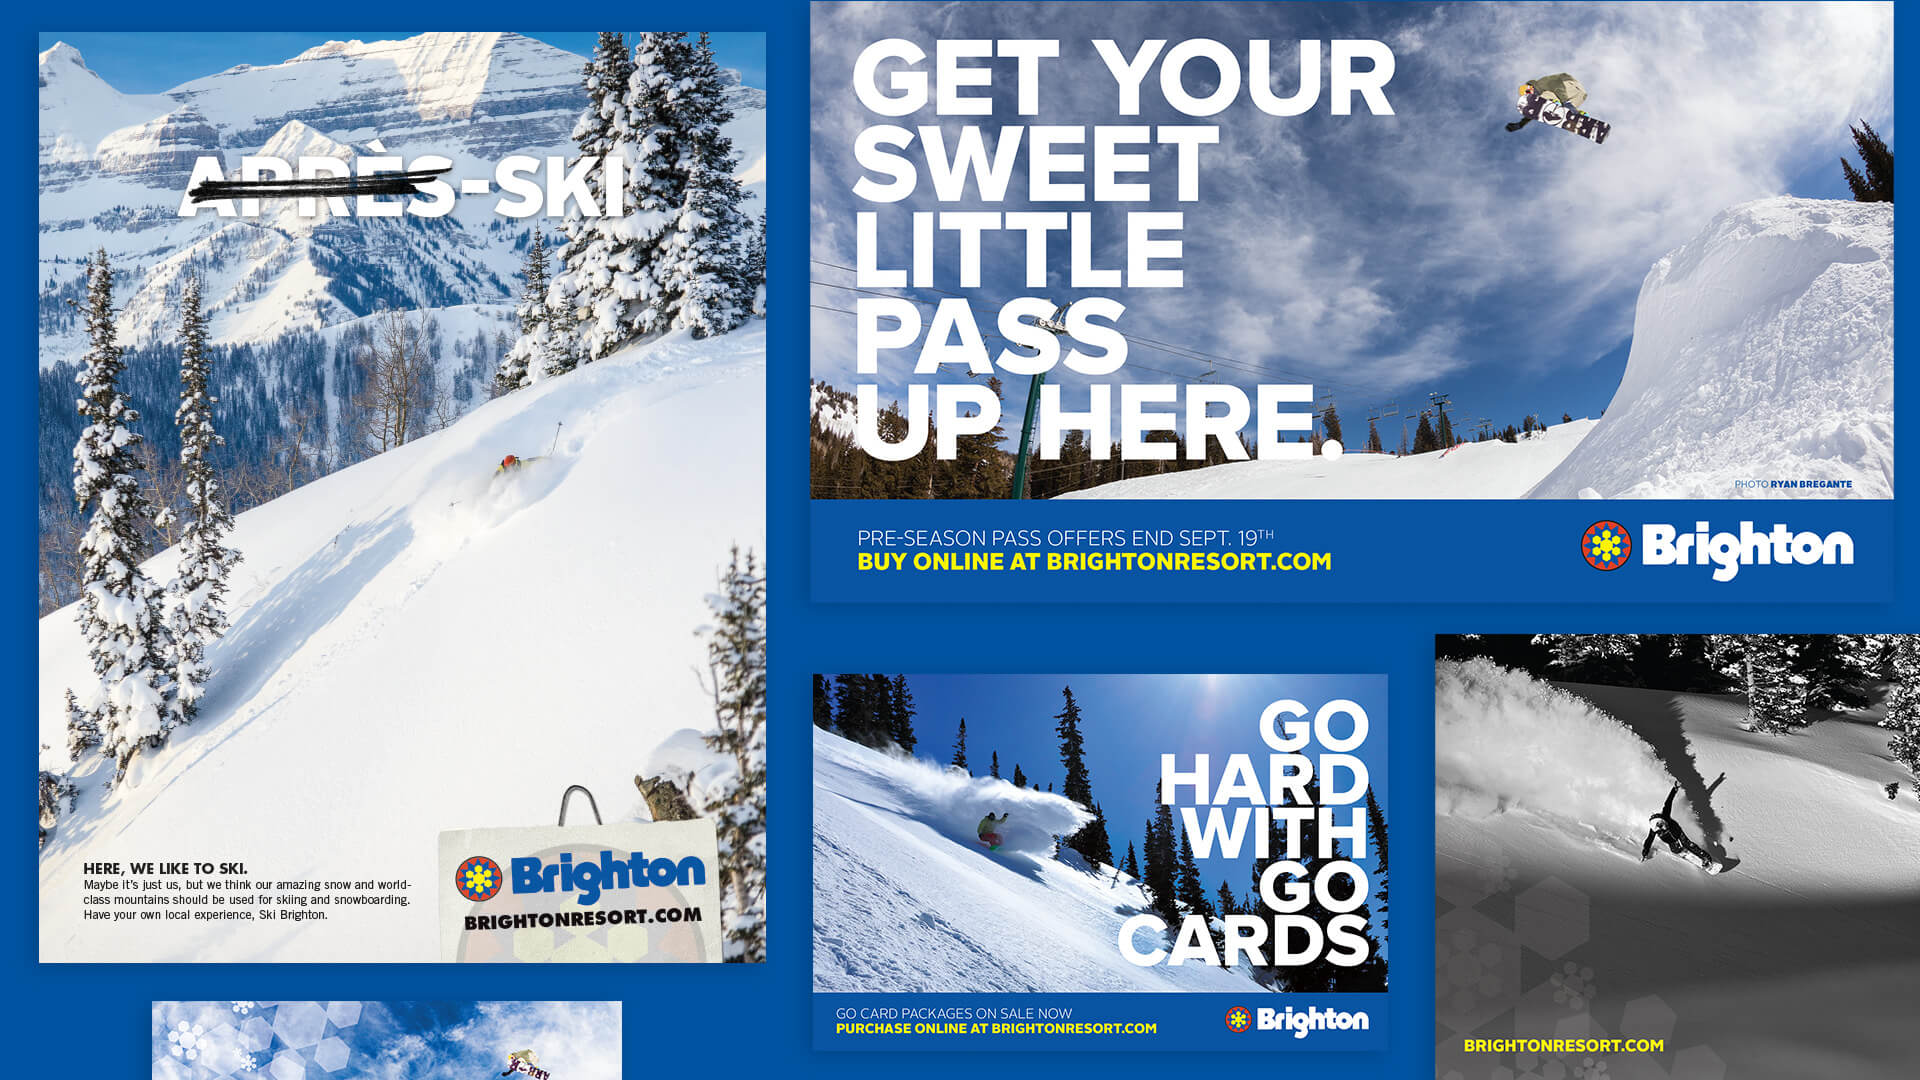 Print Advertisements - Brighton Ski Resort